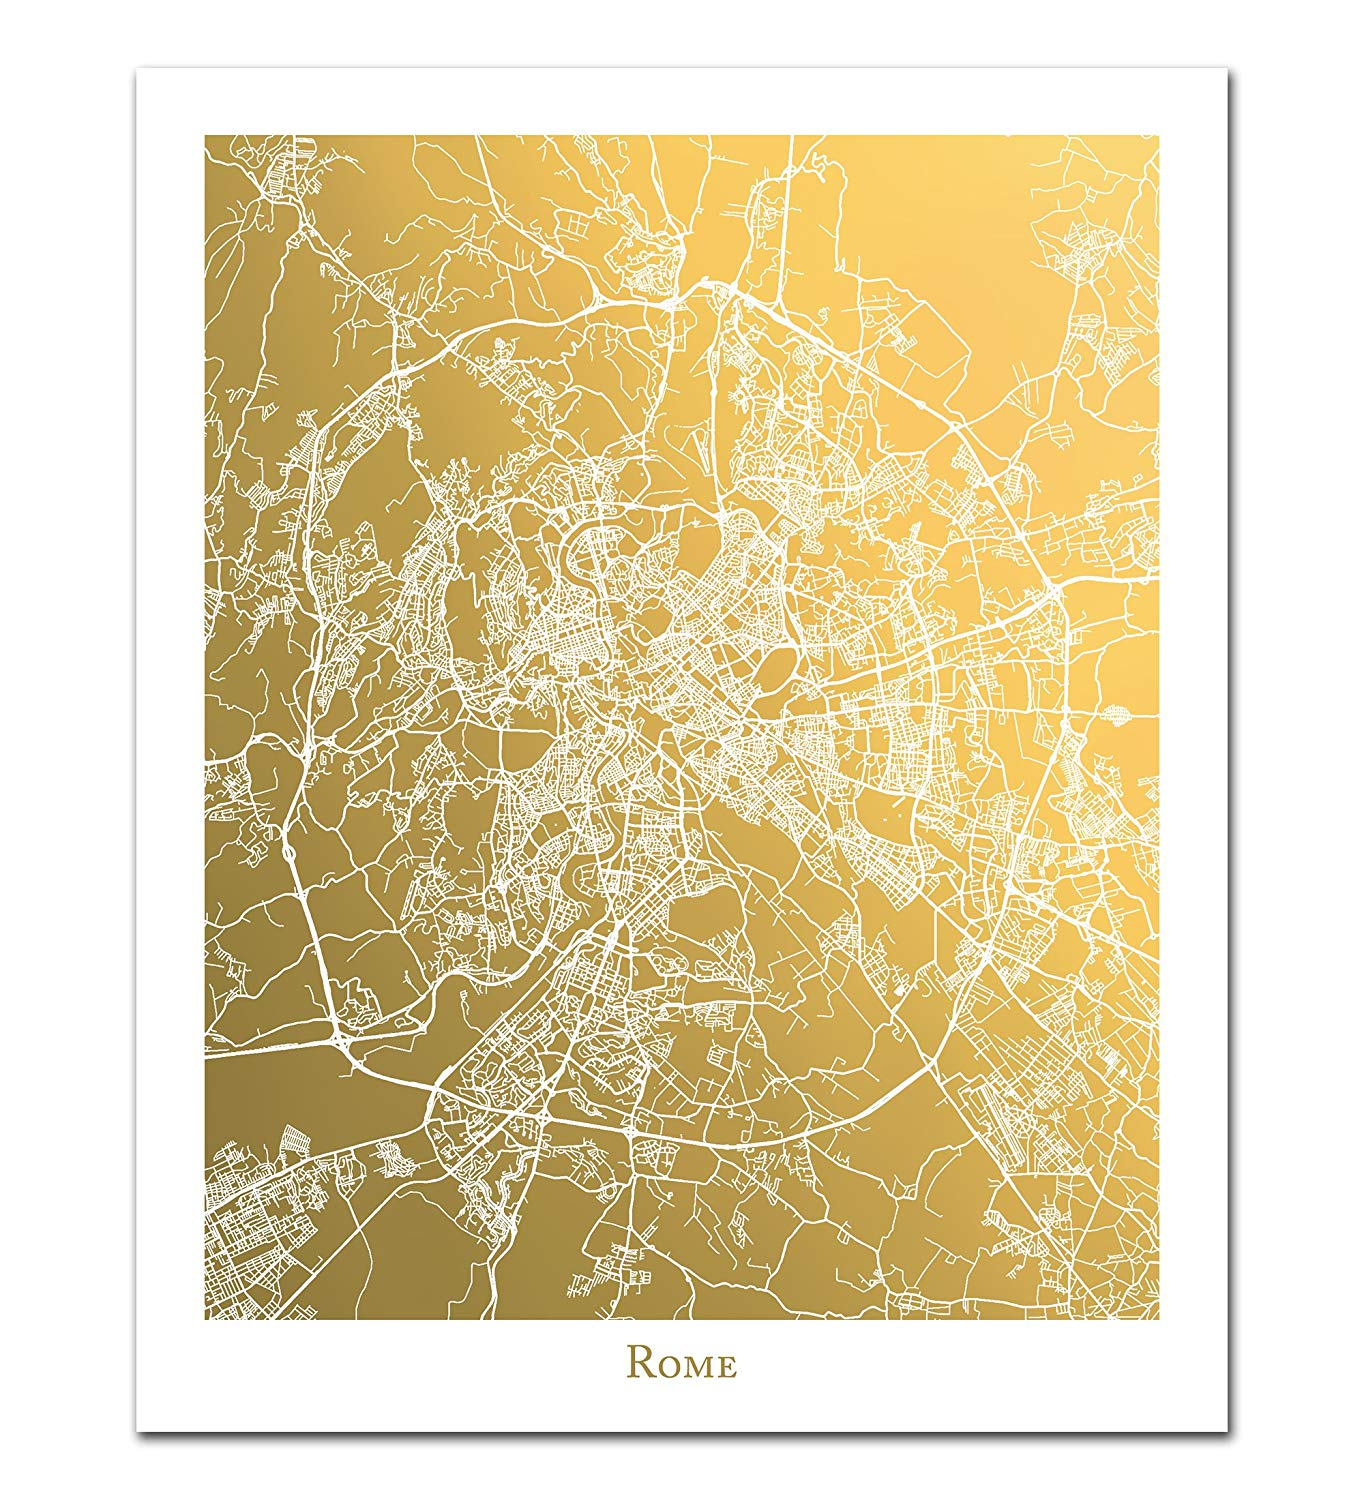 Printable Map Of Rome on large map of rome, best map of rome, map of greece and rome, outline map of rome, a map of rome, road map of rome, detailed map of rome, map with rome, map of center of rome, tourist map rome, world map of rome, metro lines map of rome, old map of rome, art map of rome, interactive map of rome, prati area rome, downloadable map of rome, women of rome, walking map of rome, green map of rome,